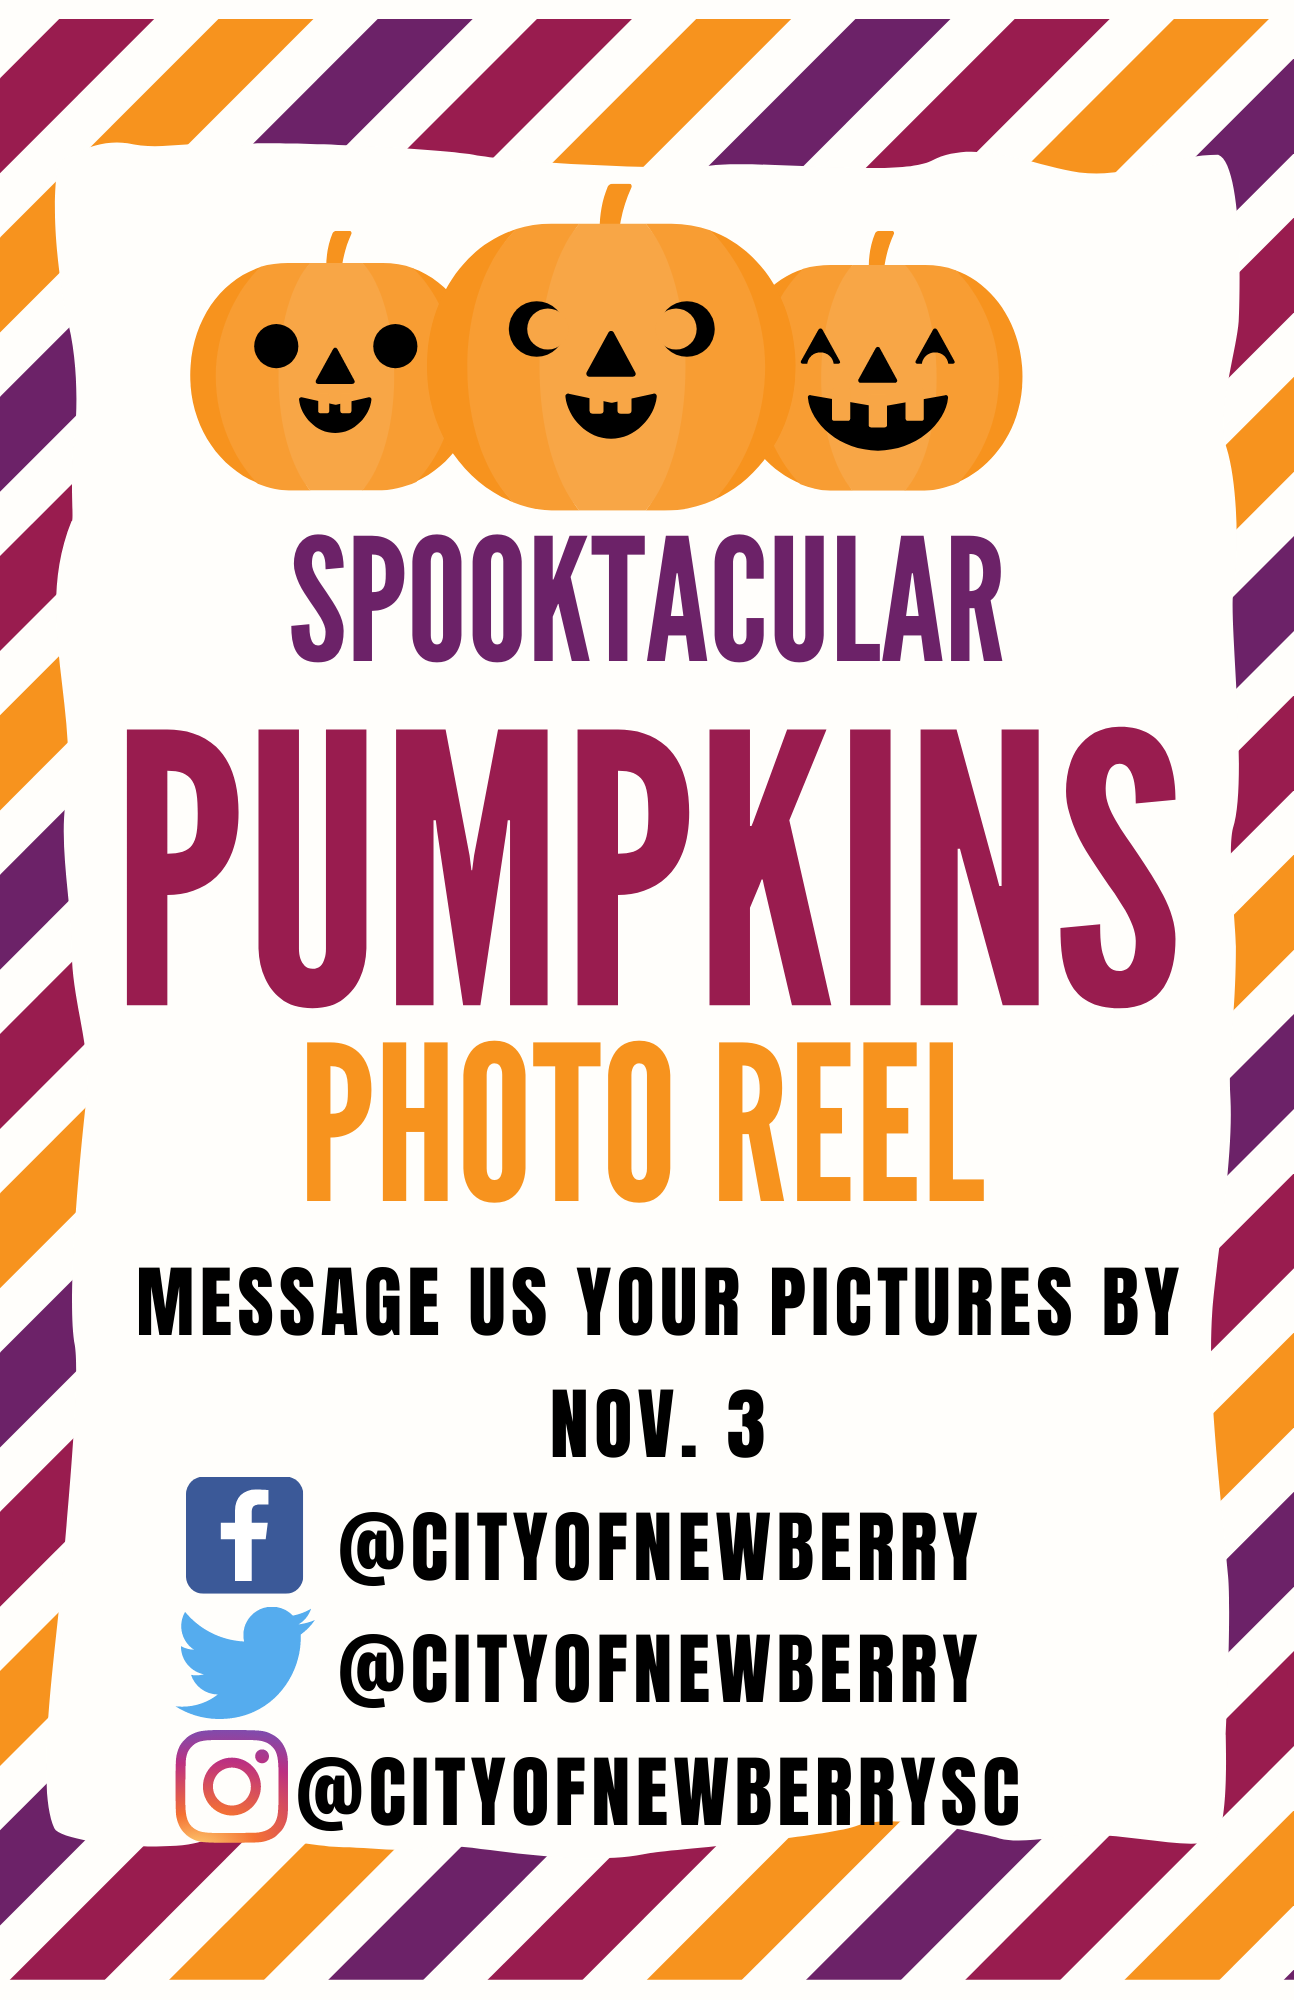 Spooktacular Pumpkin Photo Reel.  Message us your pictures by Nov. 3. Facebook  and Twitter @CityofNewberry, Instagram @CityofnewberrySC